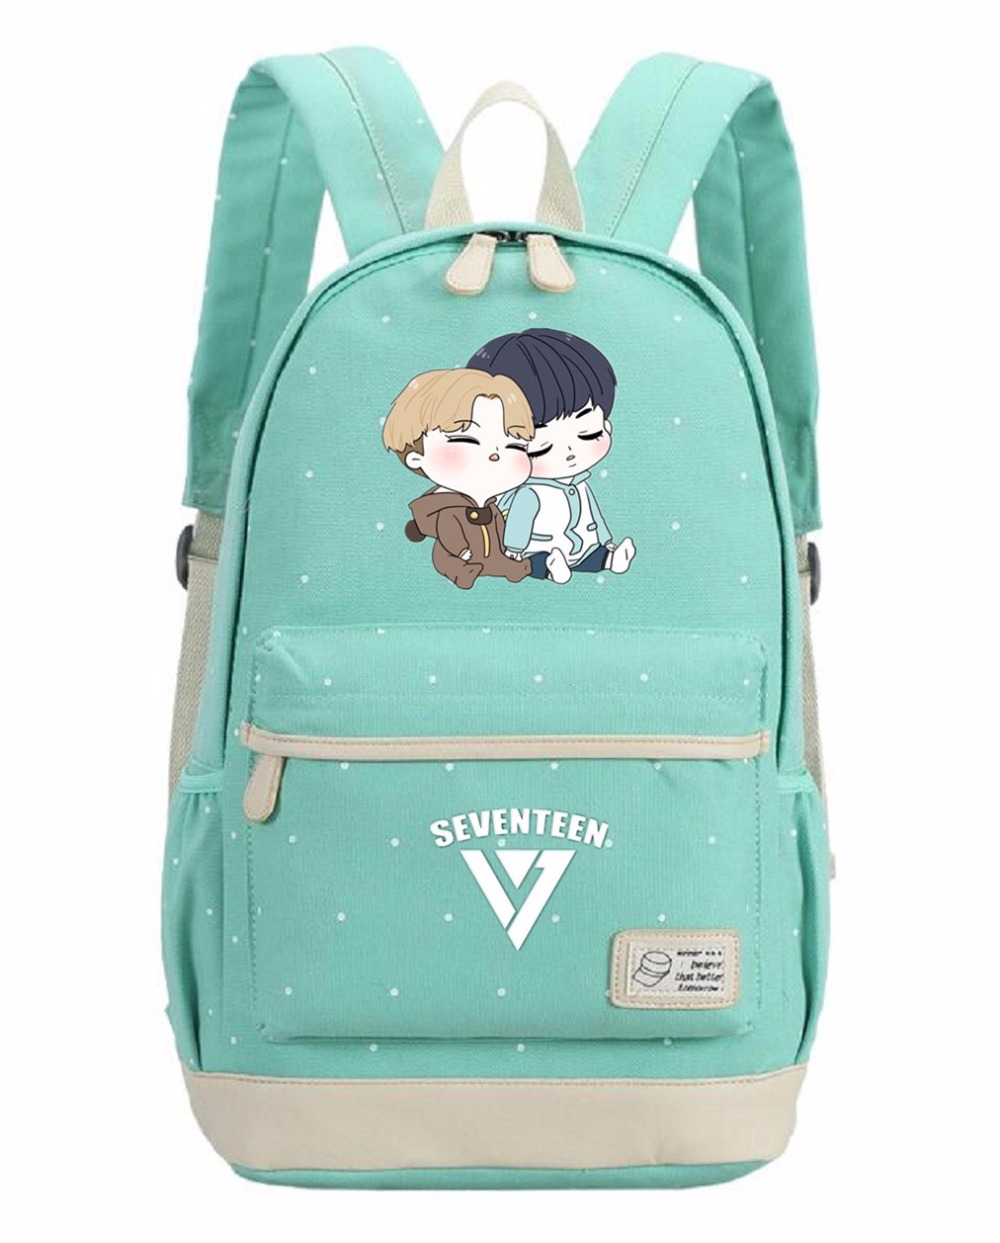 Backpacks Komikoy Seventeen 17 Canvas Laptop Bag Flower Rucksacks Backpack Student School Travel Bags Daypack Removing Obstruction Men's Bags